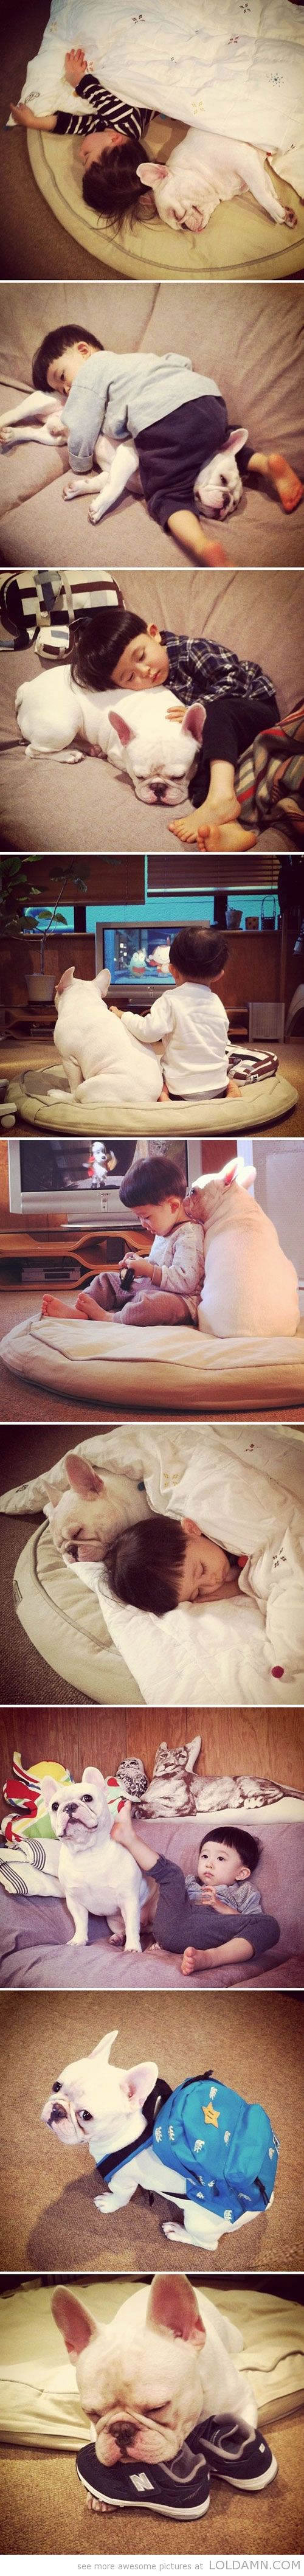 well now i definitely need to get a frenchie.